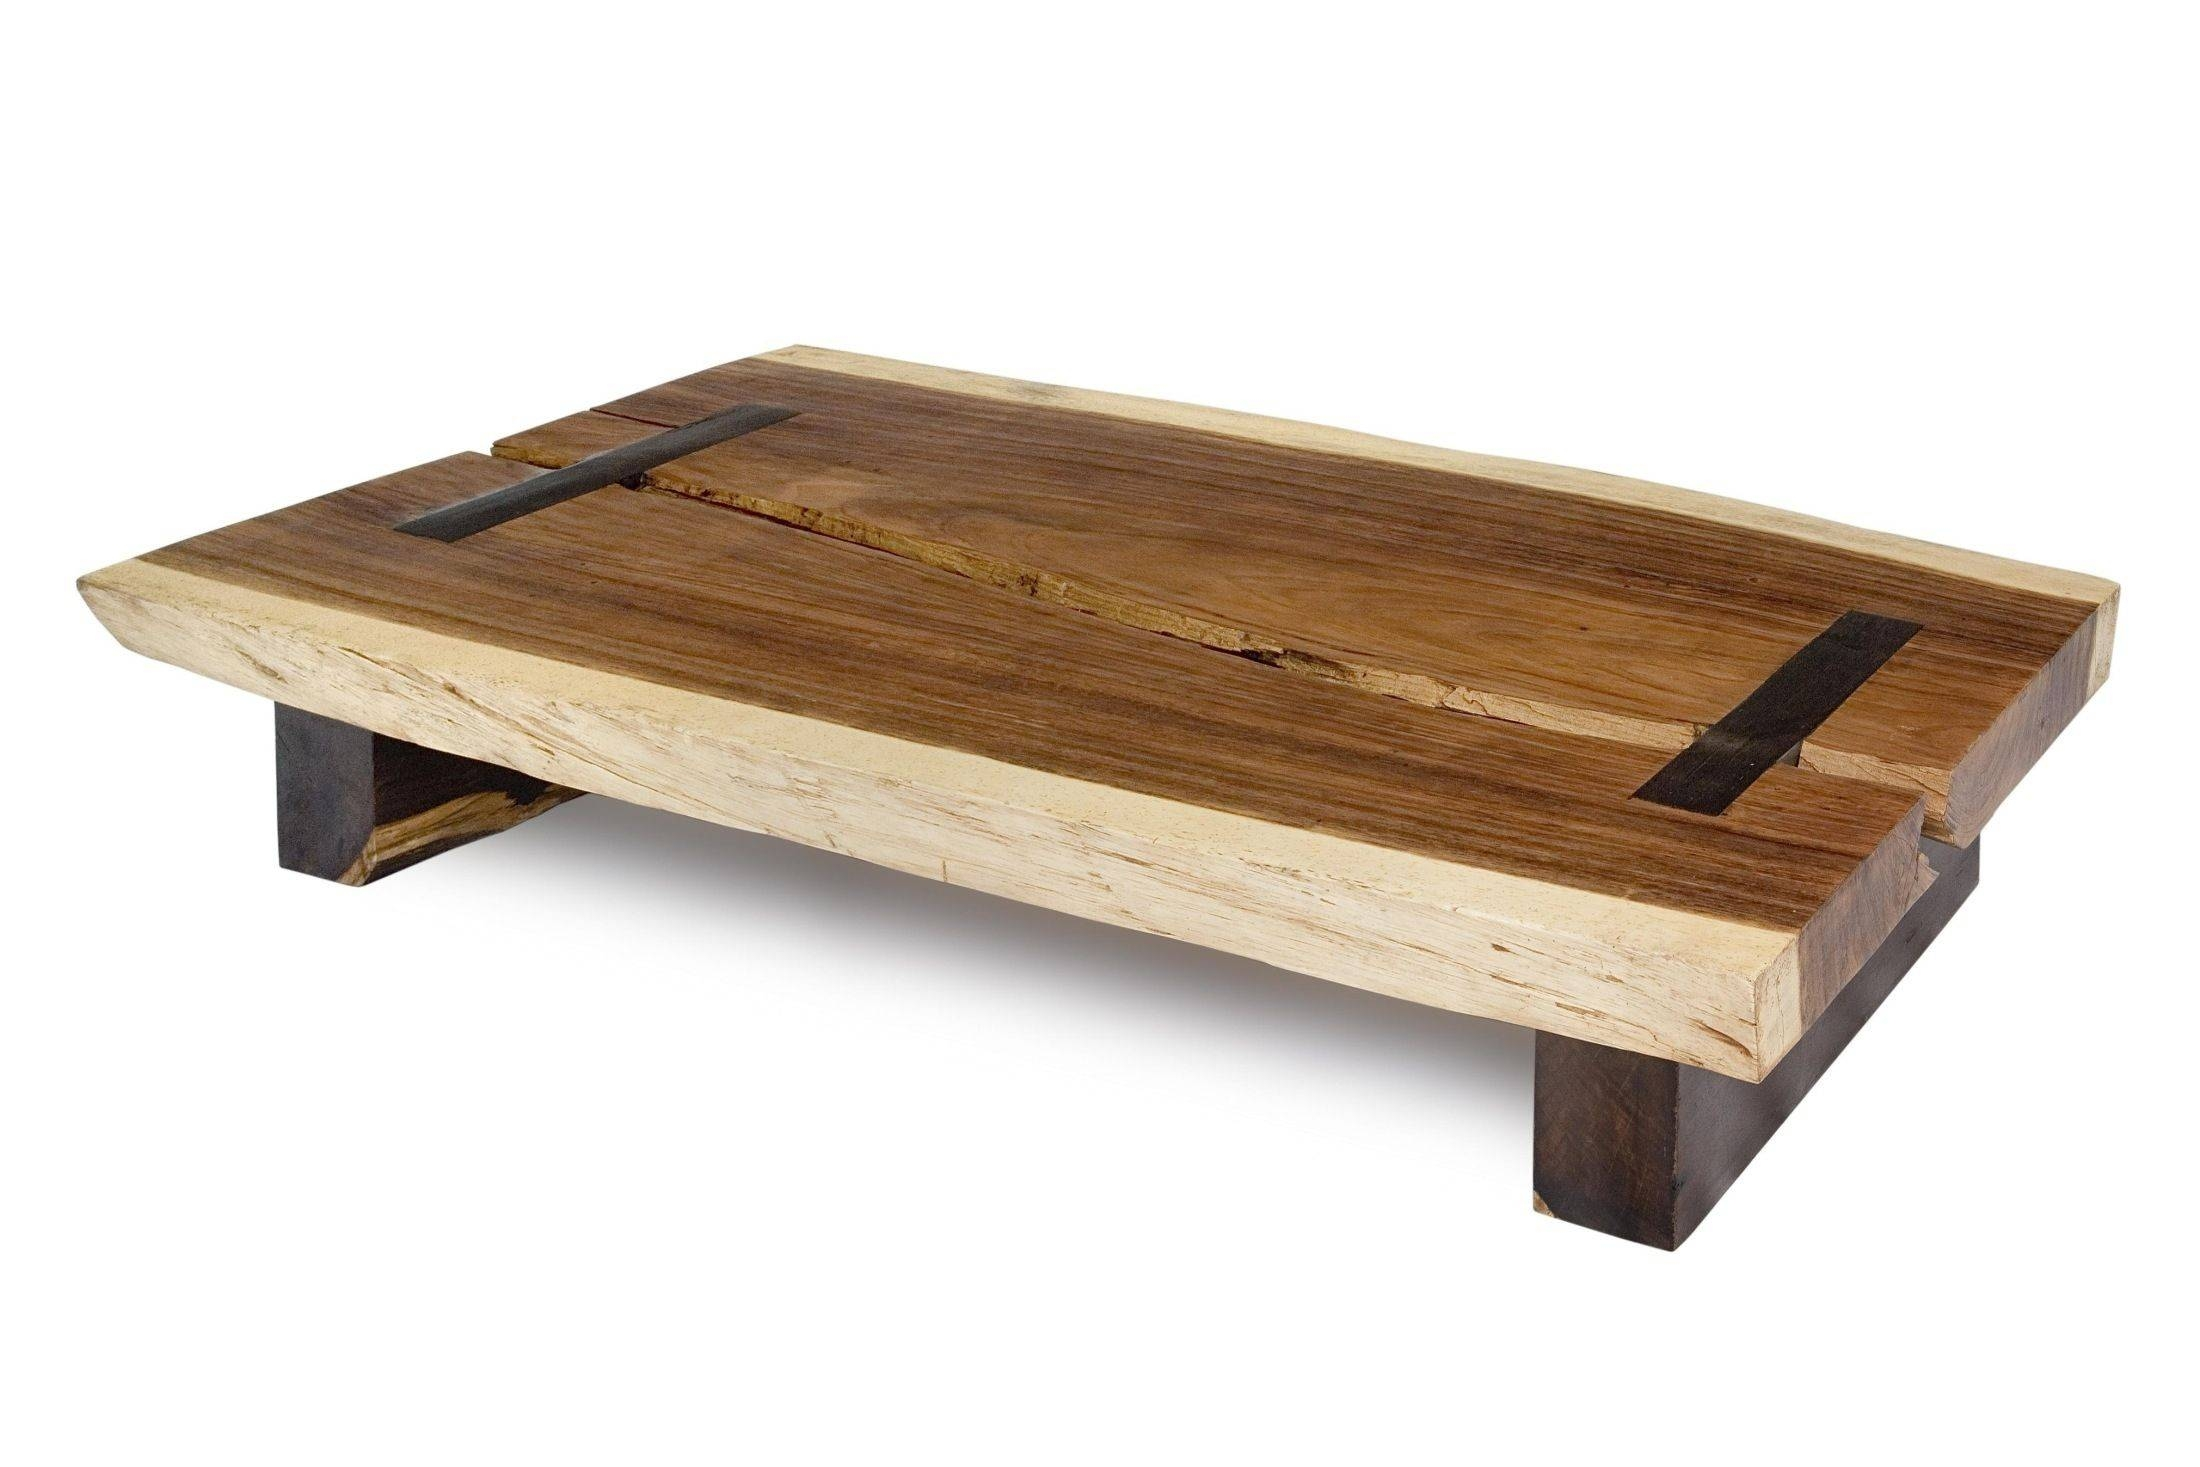 15 Ideas of Cool Coffee Tables